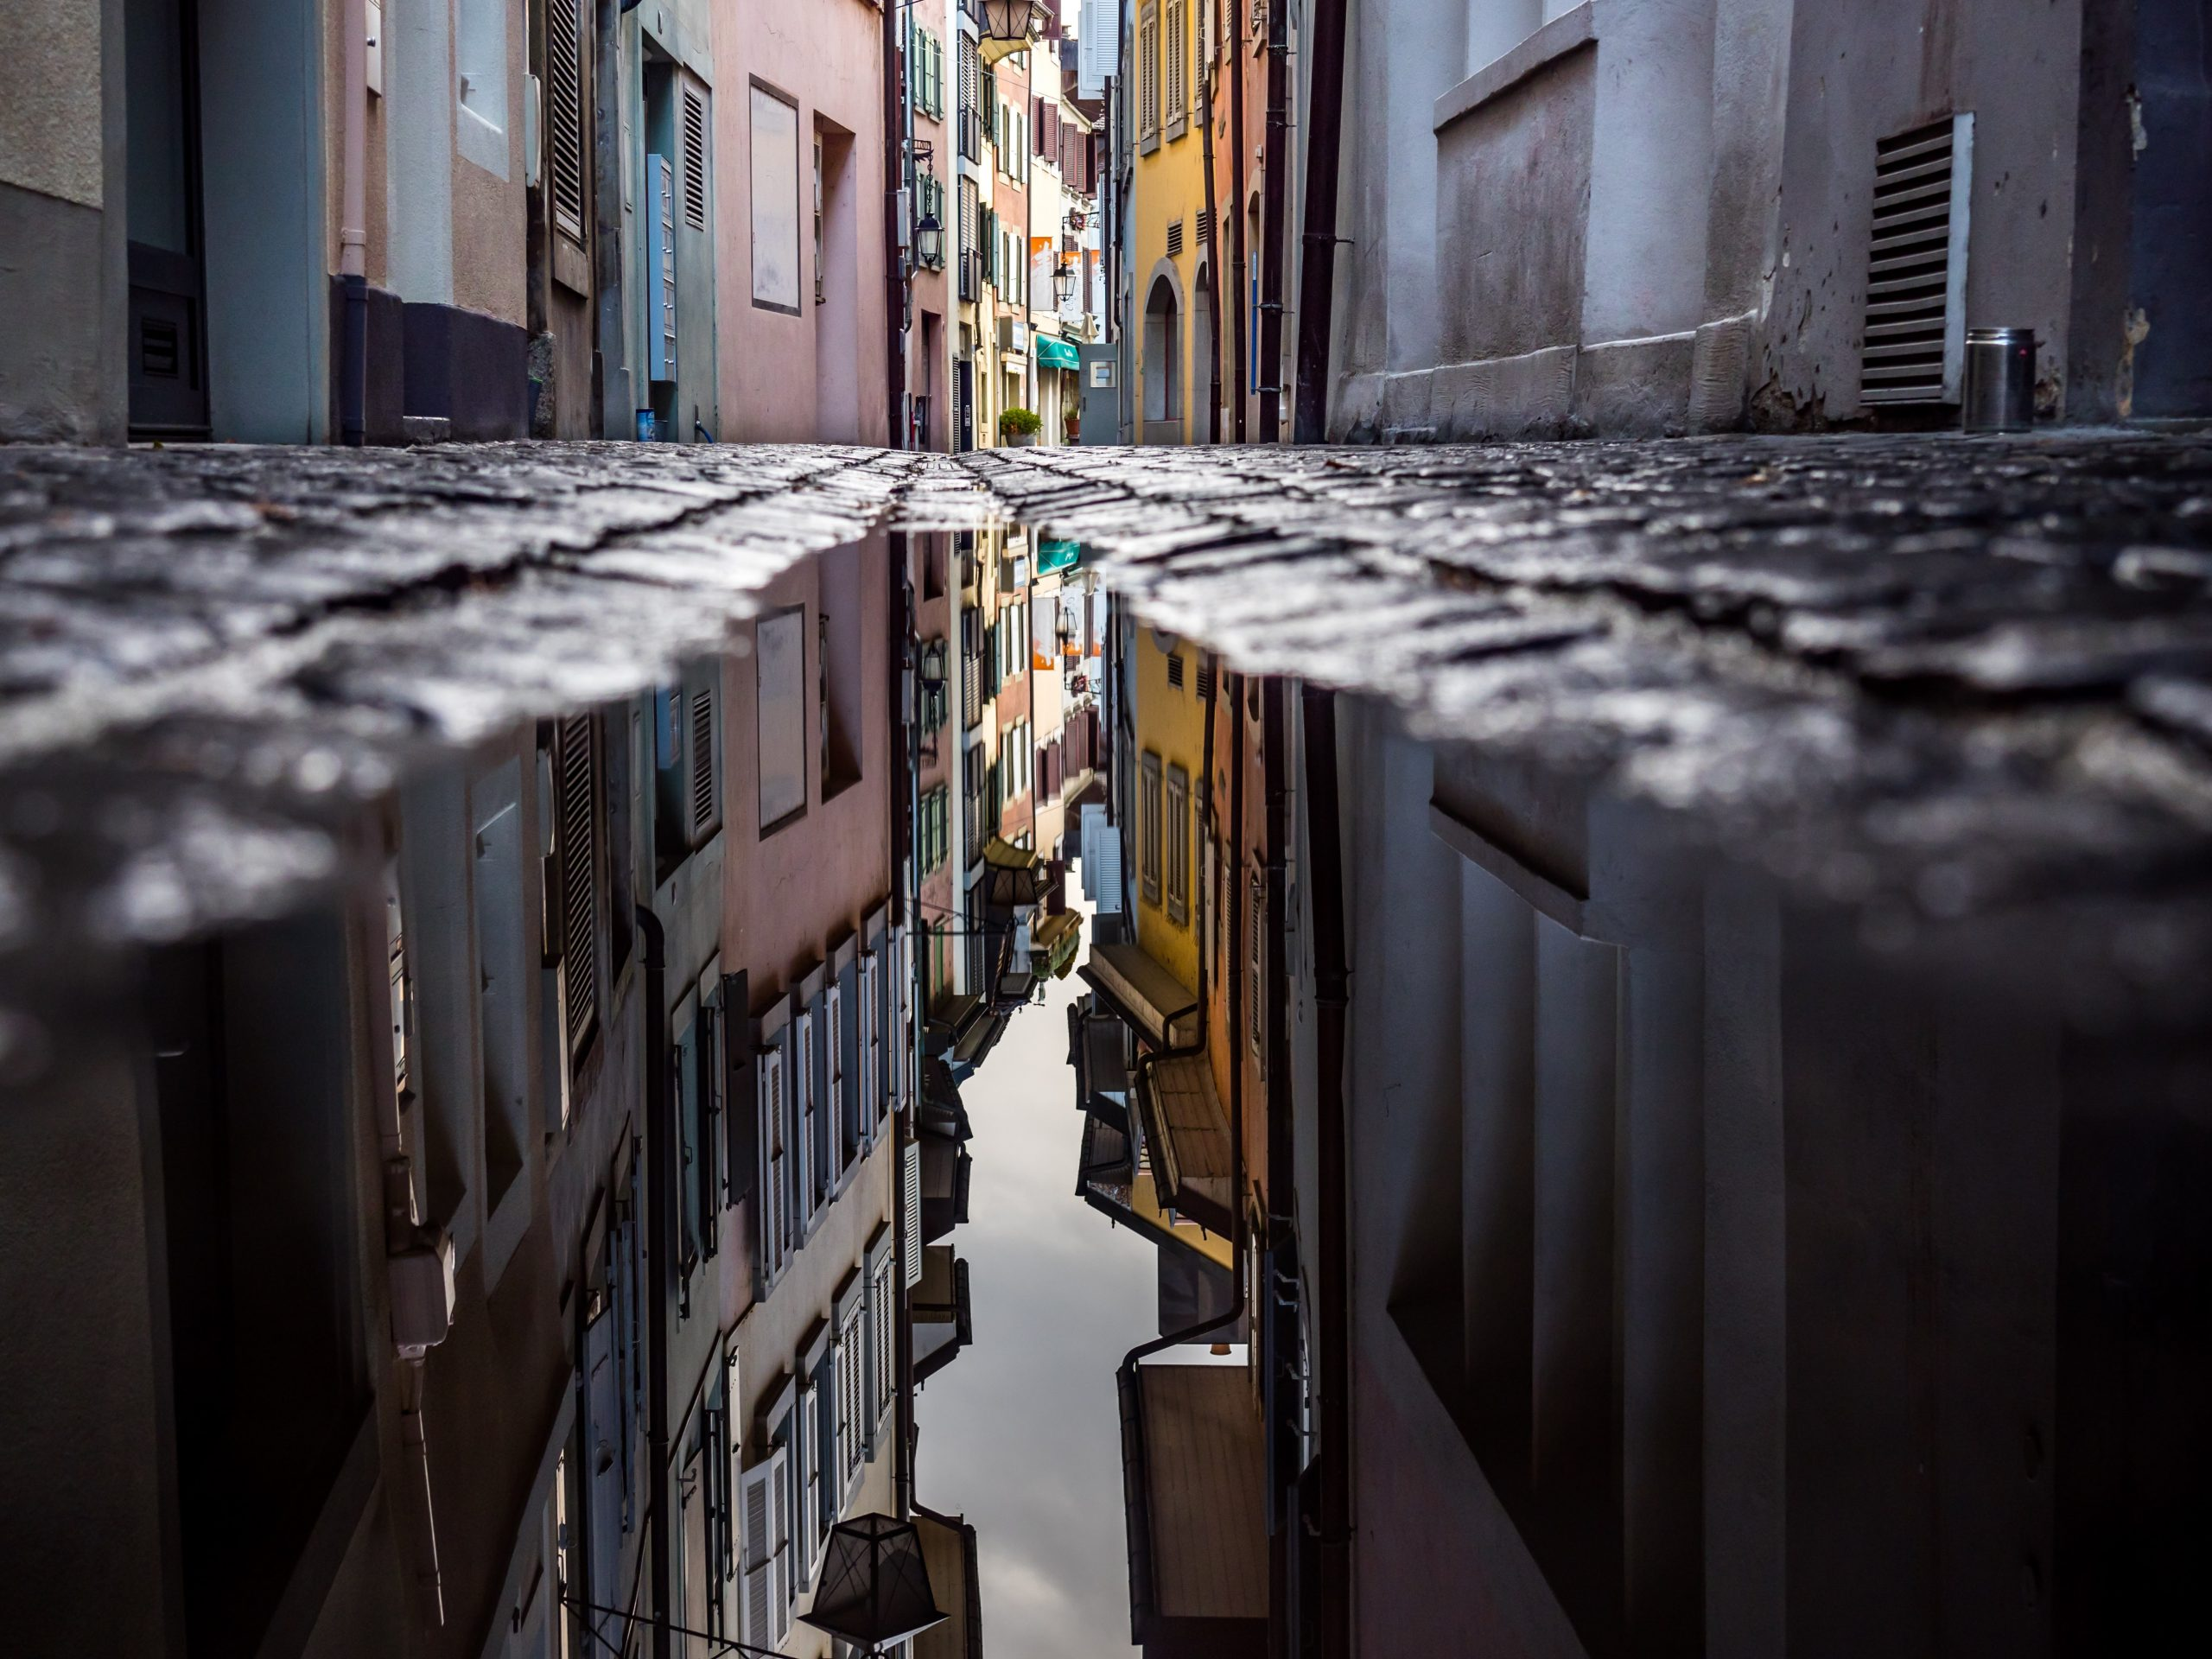 Narrow lanes in mediterranean city reflected in large puddle